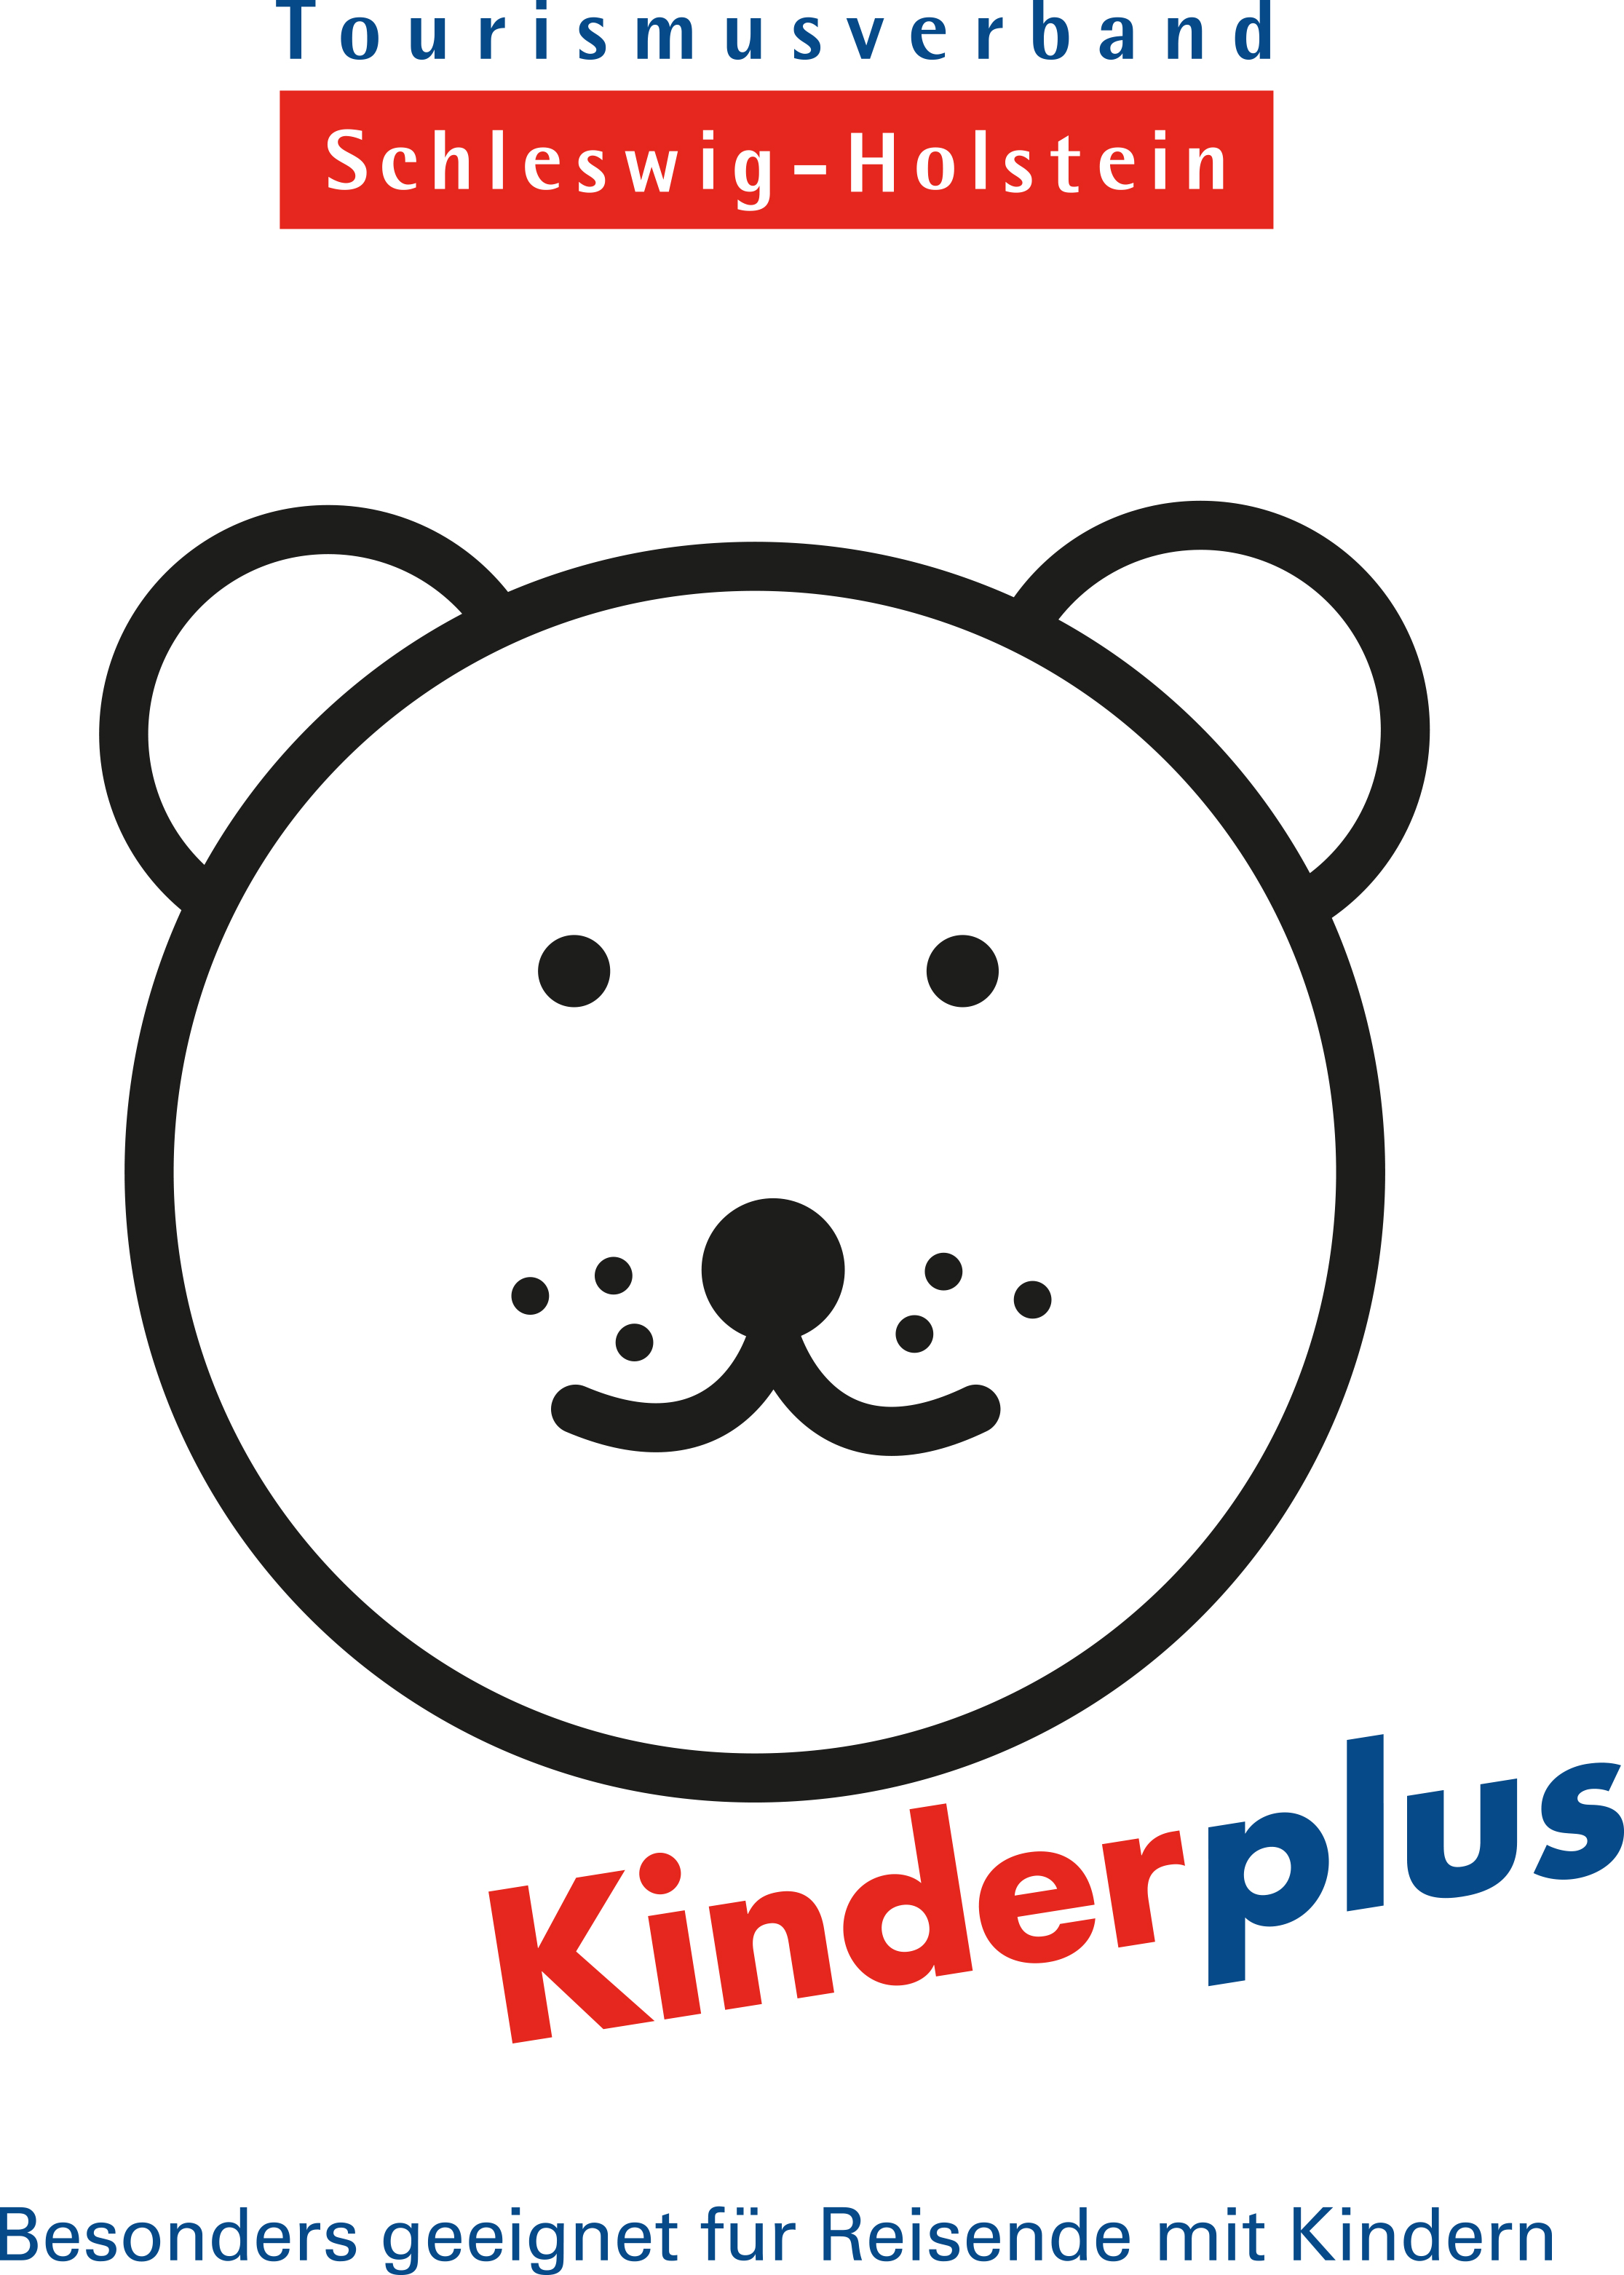 Kinderplus Logo Mit Text